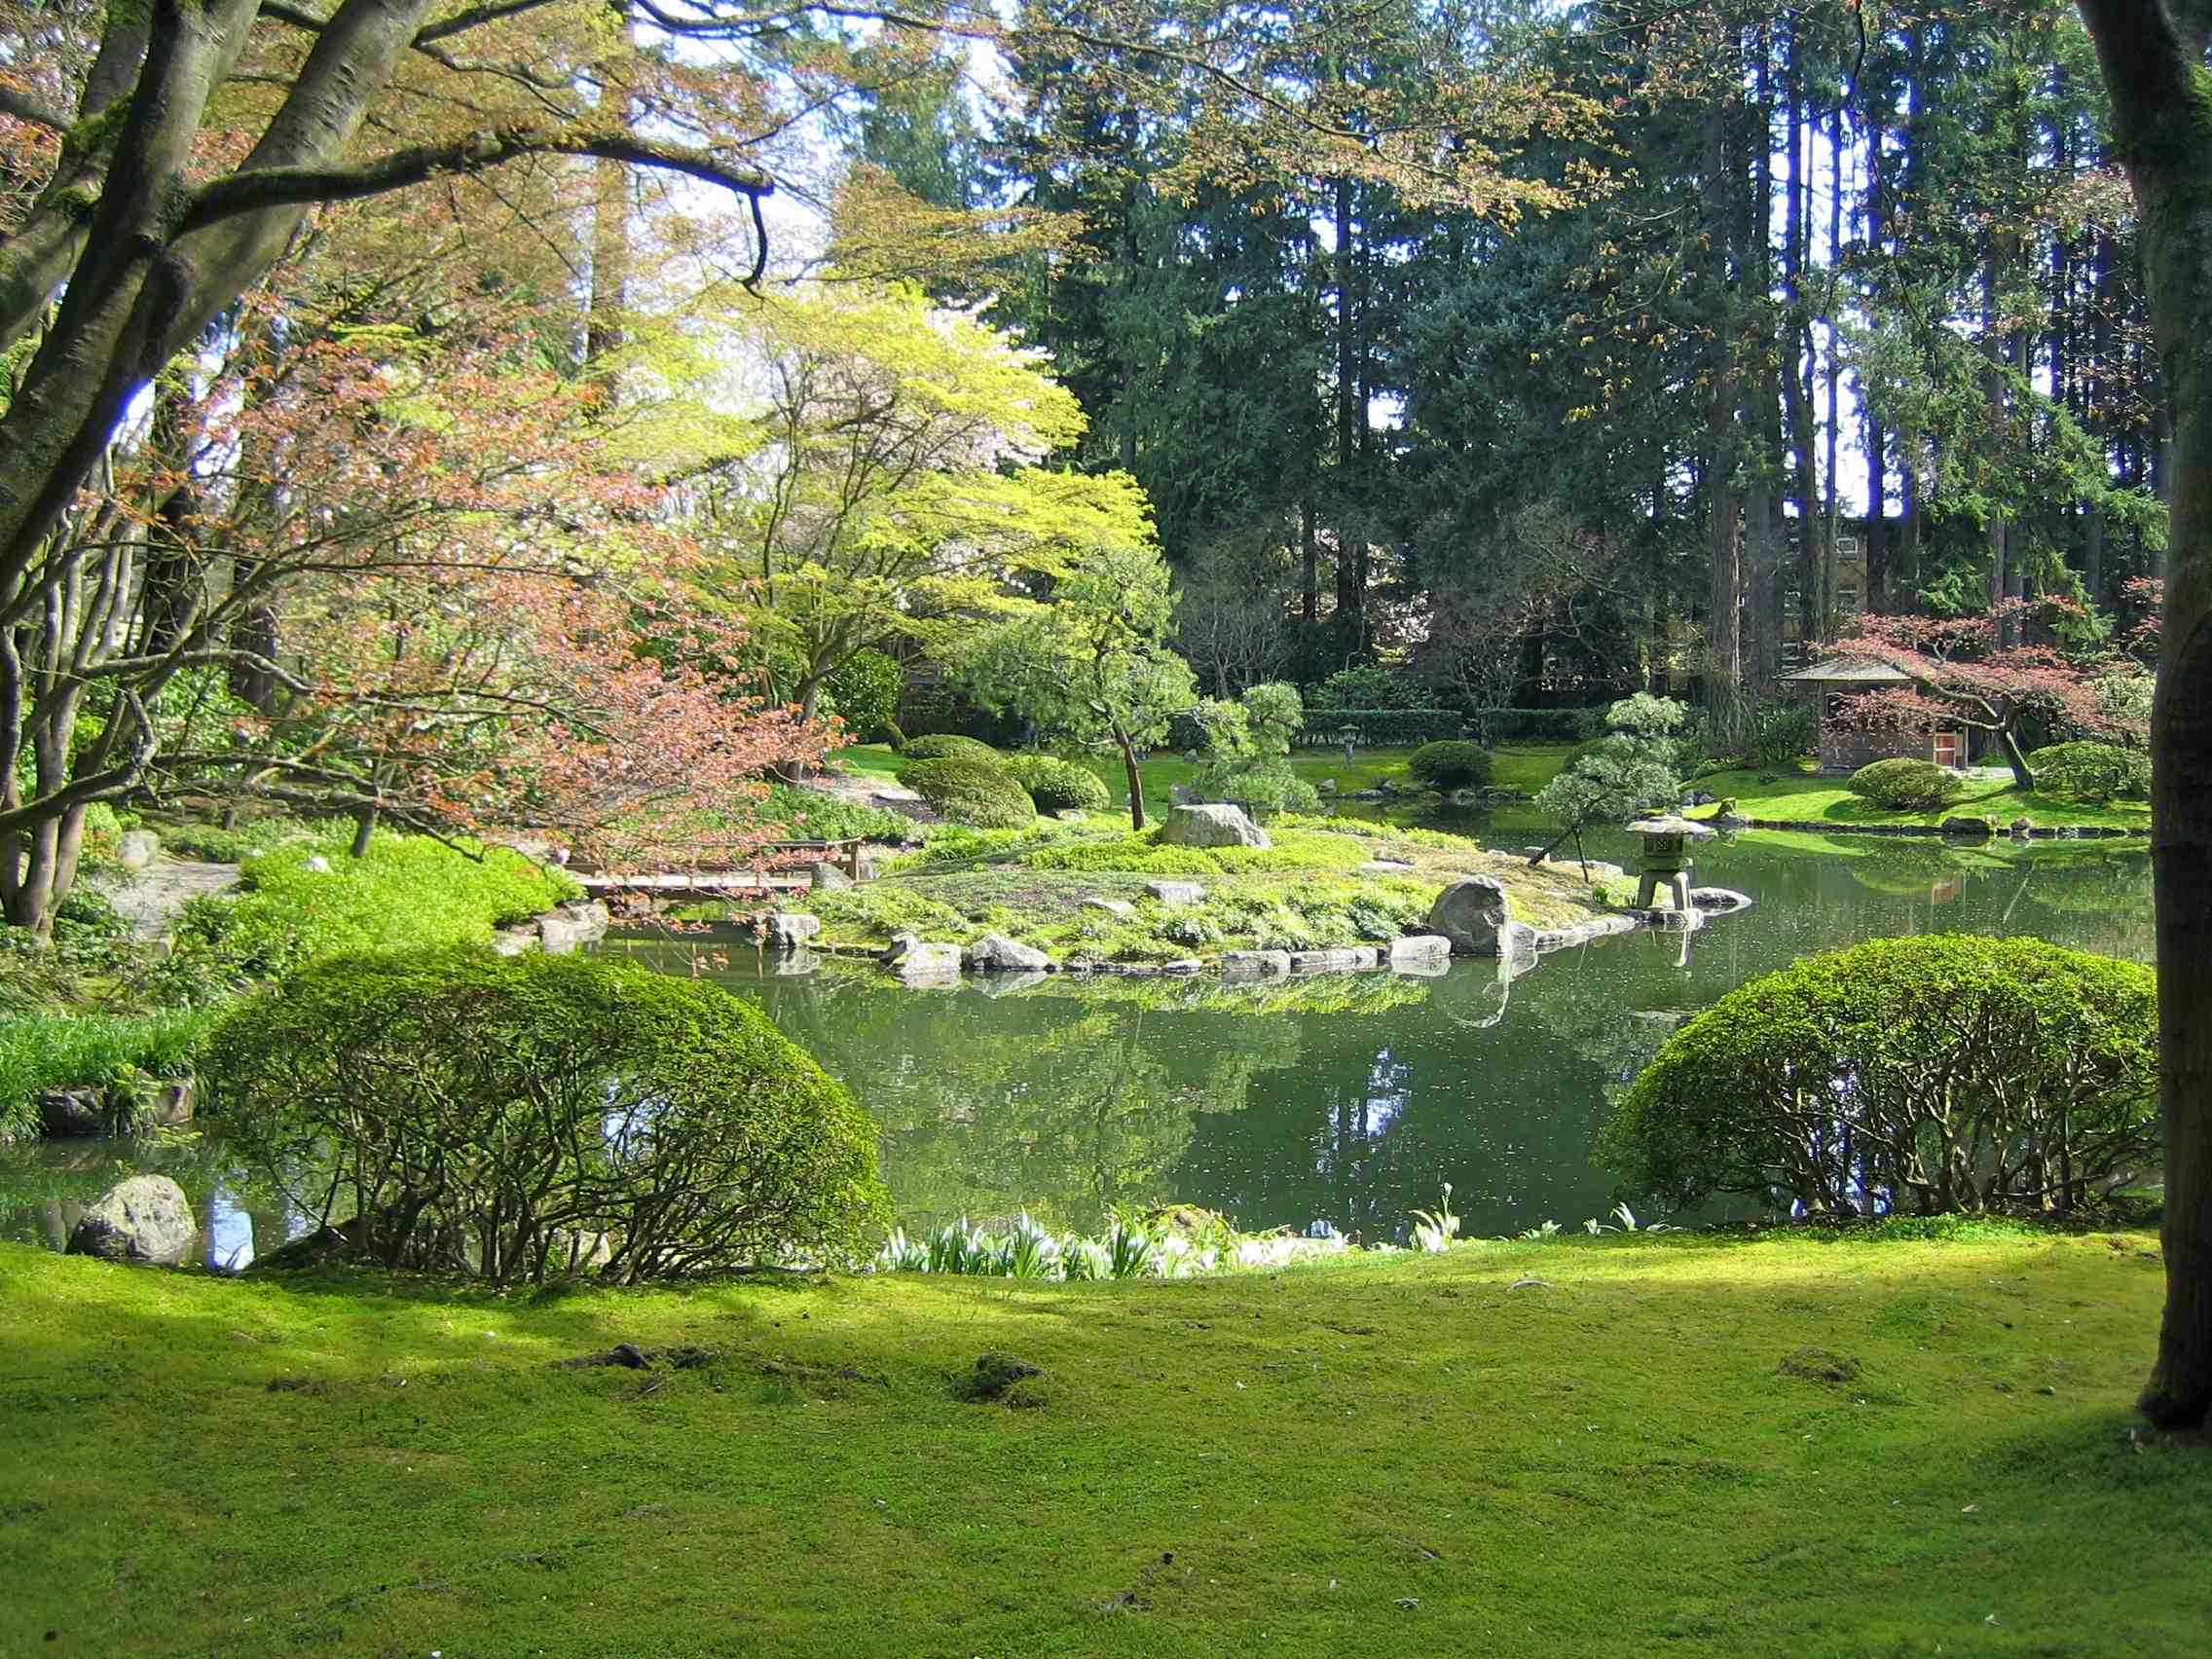 A landscape s story the nitobe memorial garden ekostories for Outdoor pictures for gardens